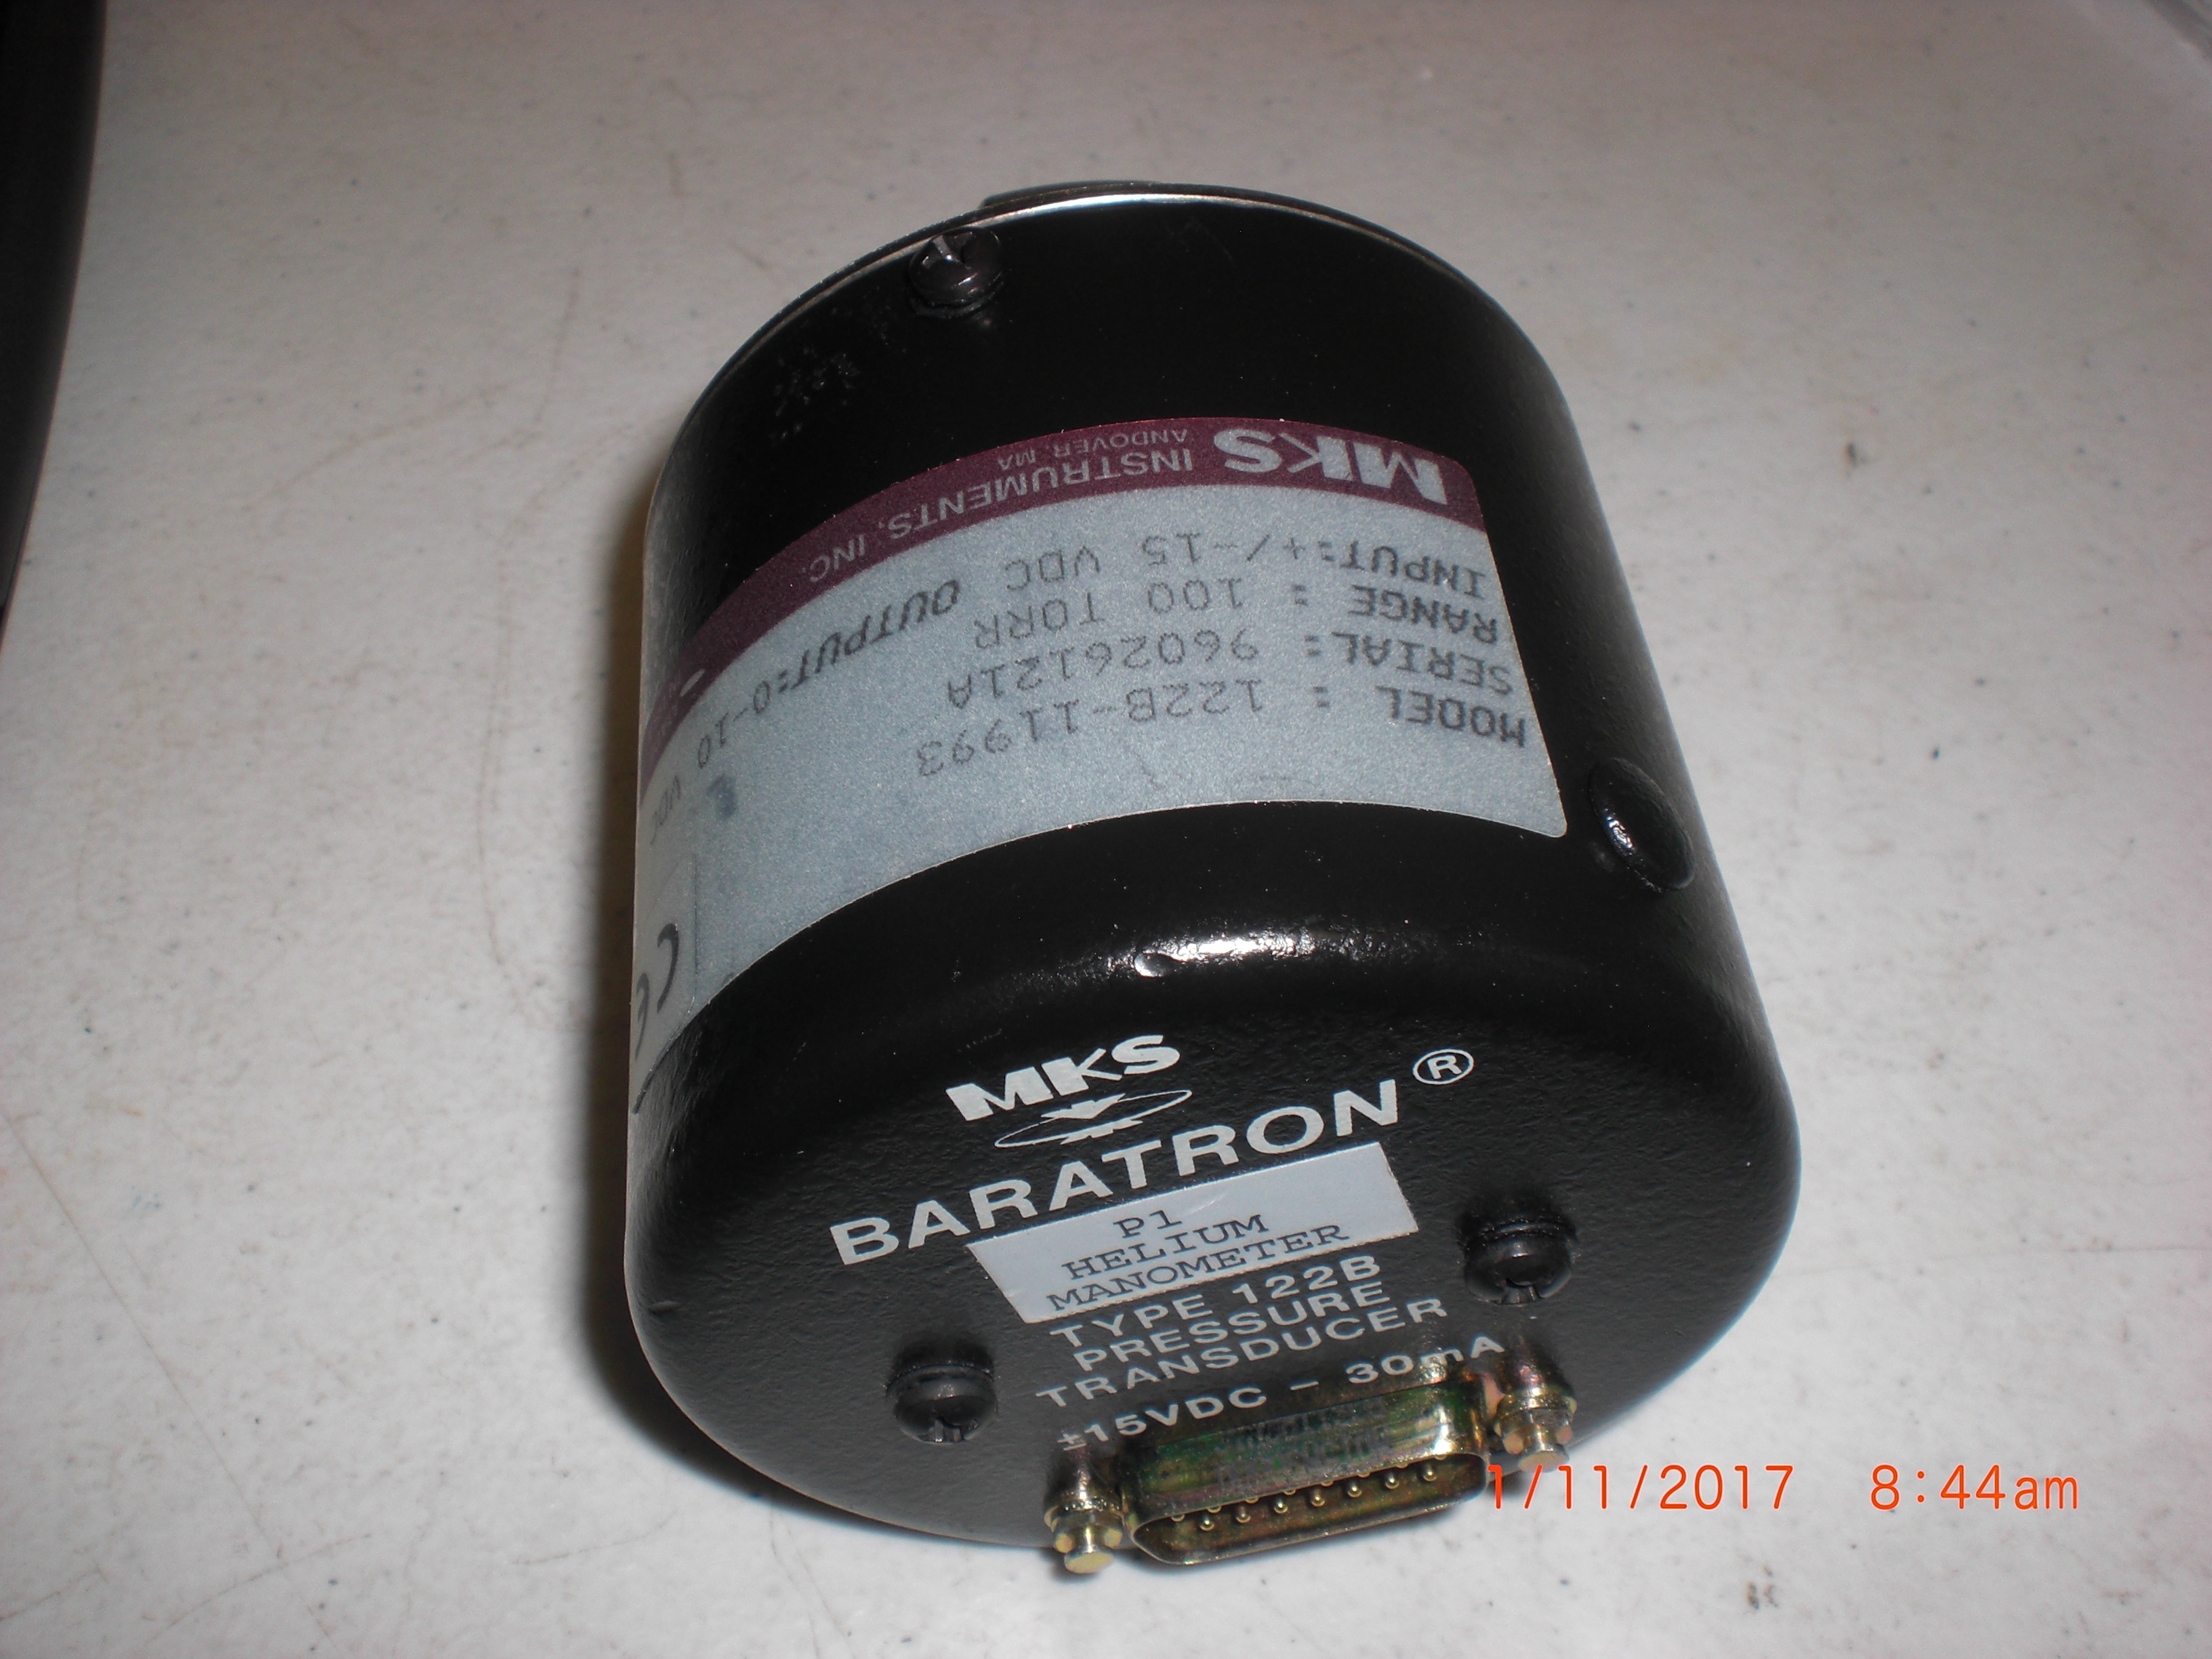 Baratron MKS 122B-11933 Pressure Transducer 100 torr untested